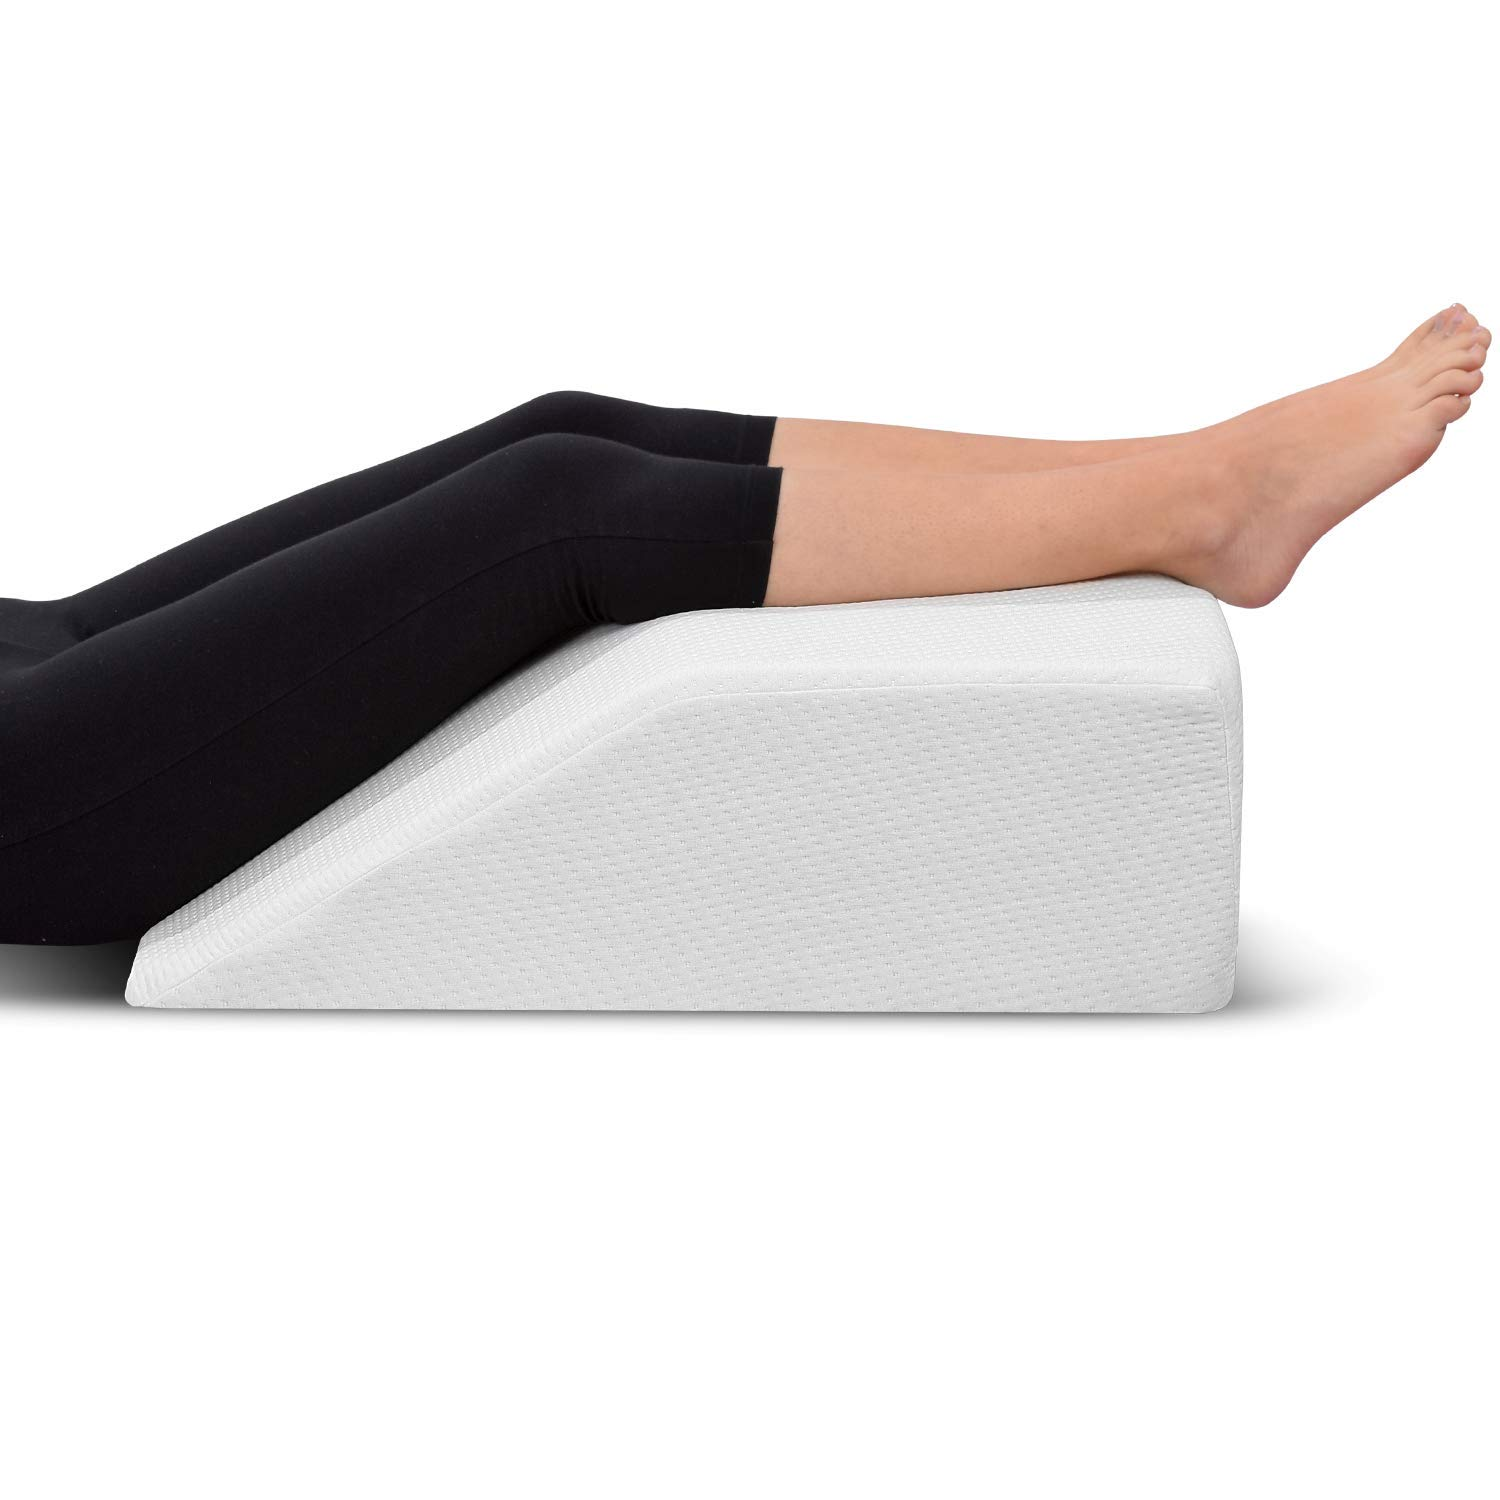 Leg Elevation Pillow - with Memory Foam Top, High-Density Leg Rest Elevating Foam Wedge- Relieves Leg Pain, Hip and Knee Pain, Improves Blood Circulation, Reduces Swelling - Breathable, Washable Cover by Ebung